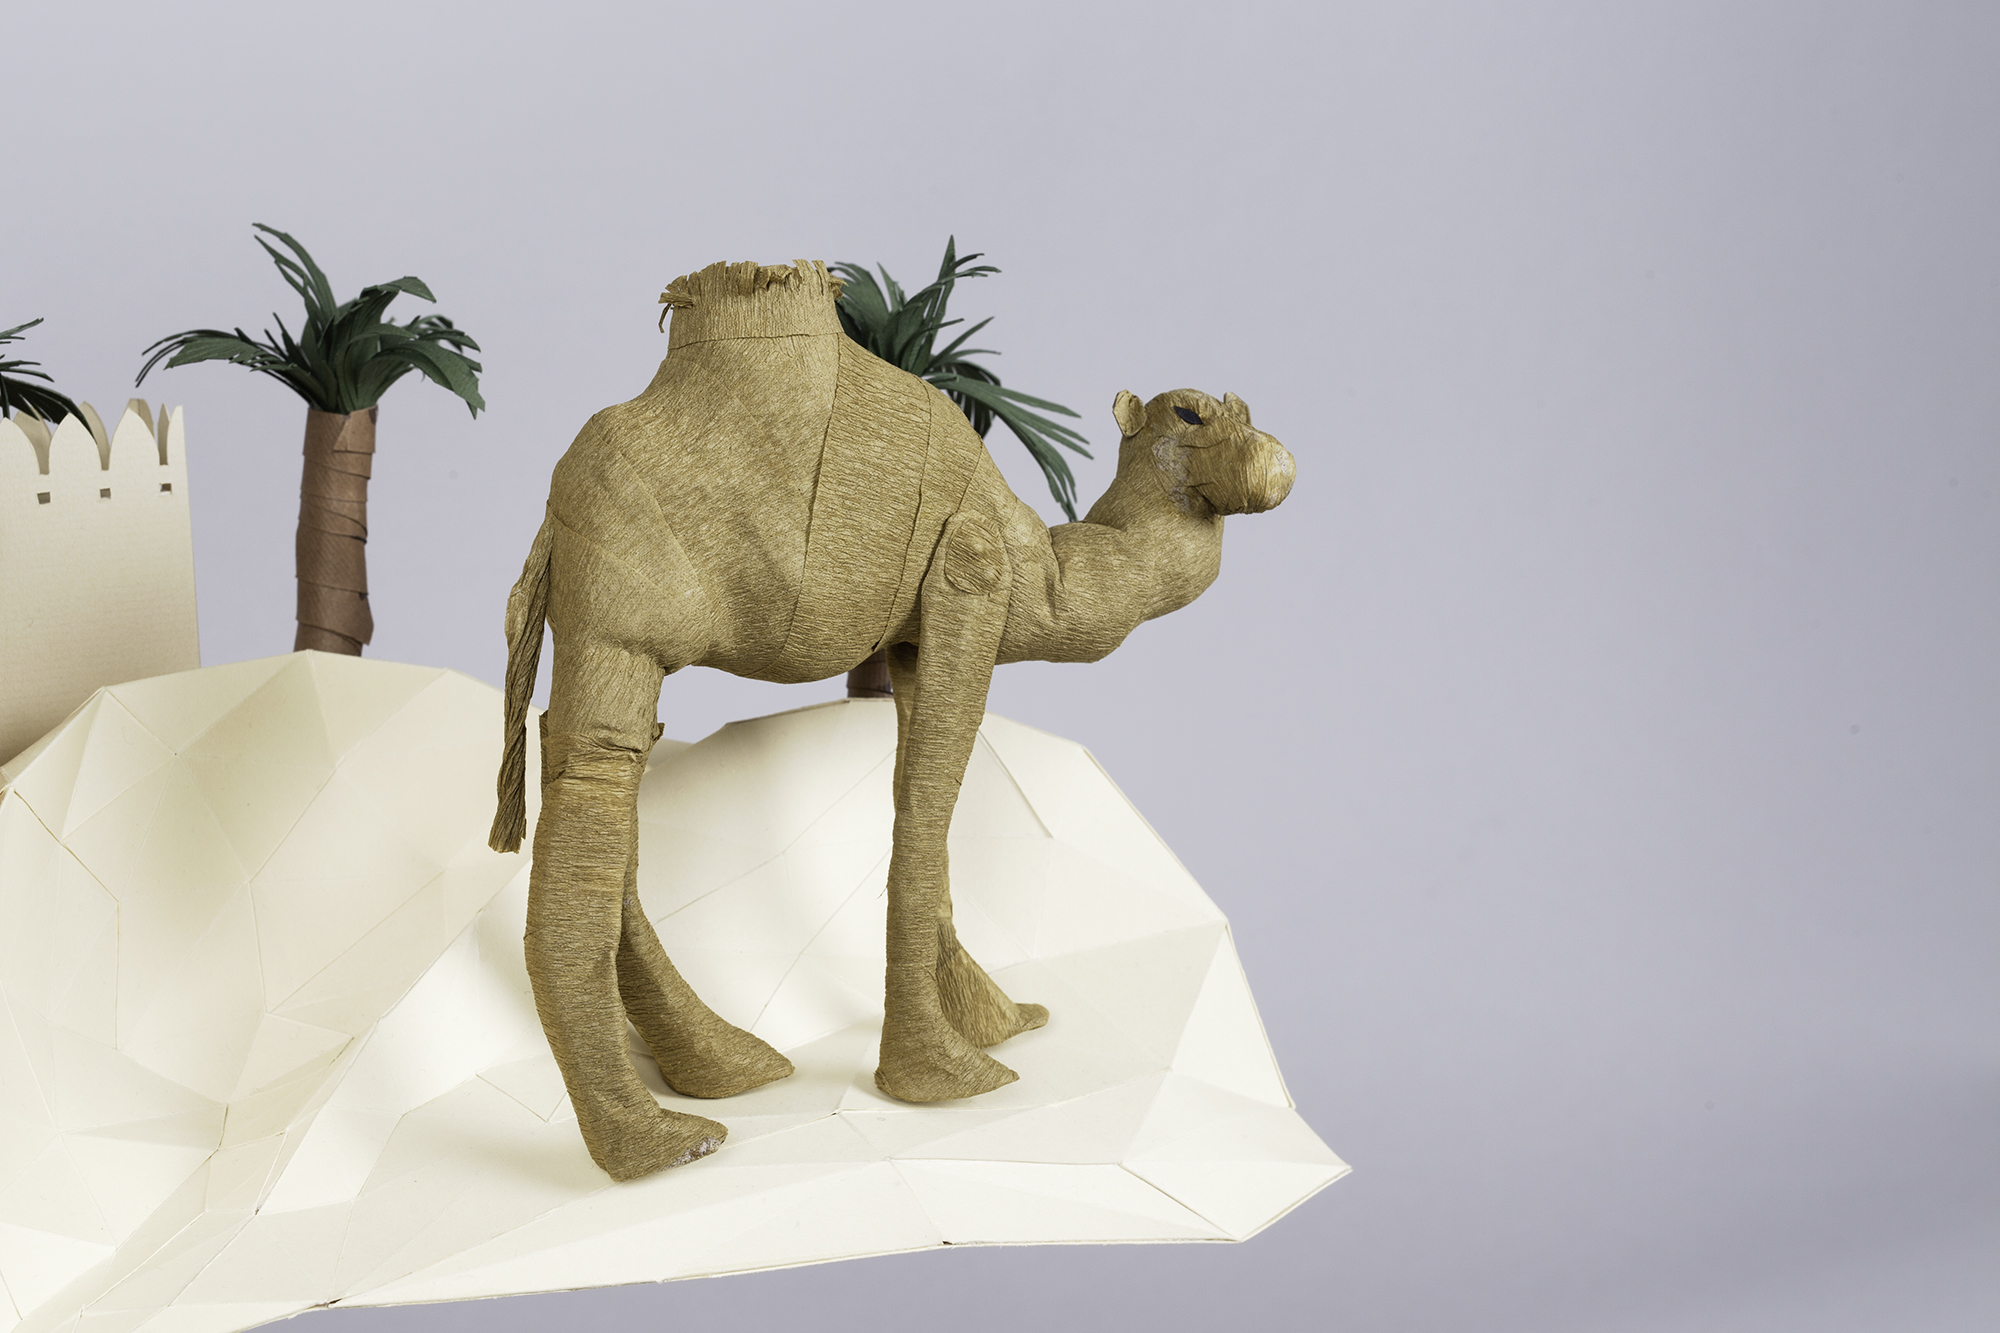 3D Letters for Silk Road Film Festival Crafted From Paper - Camel